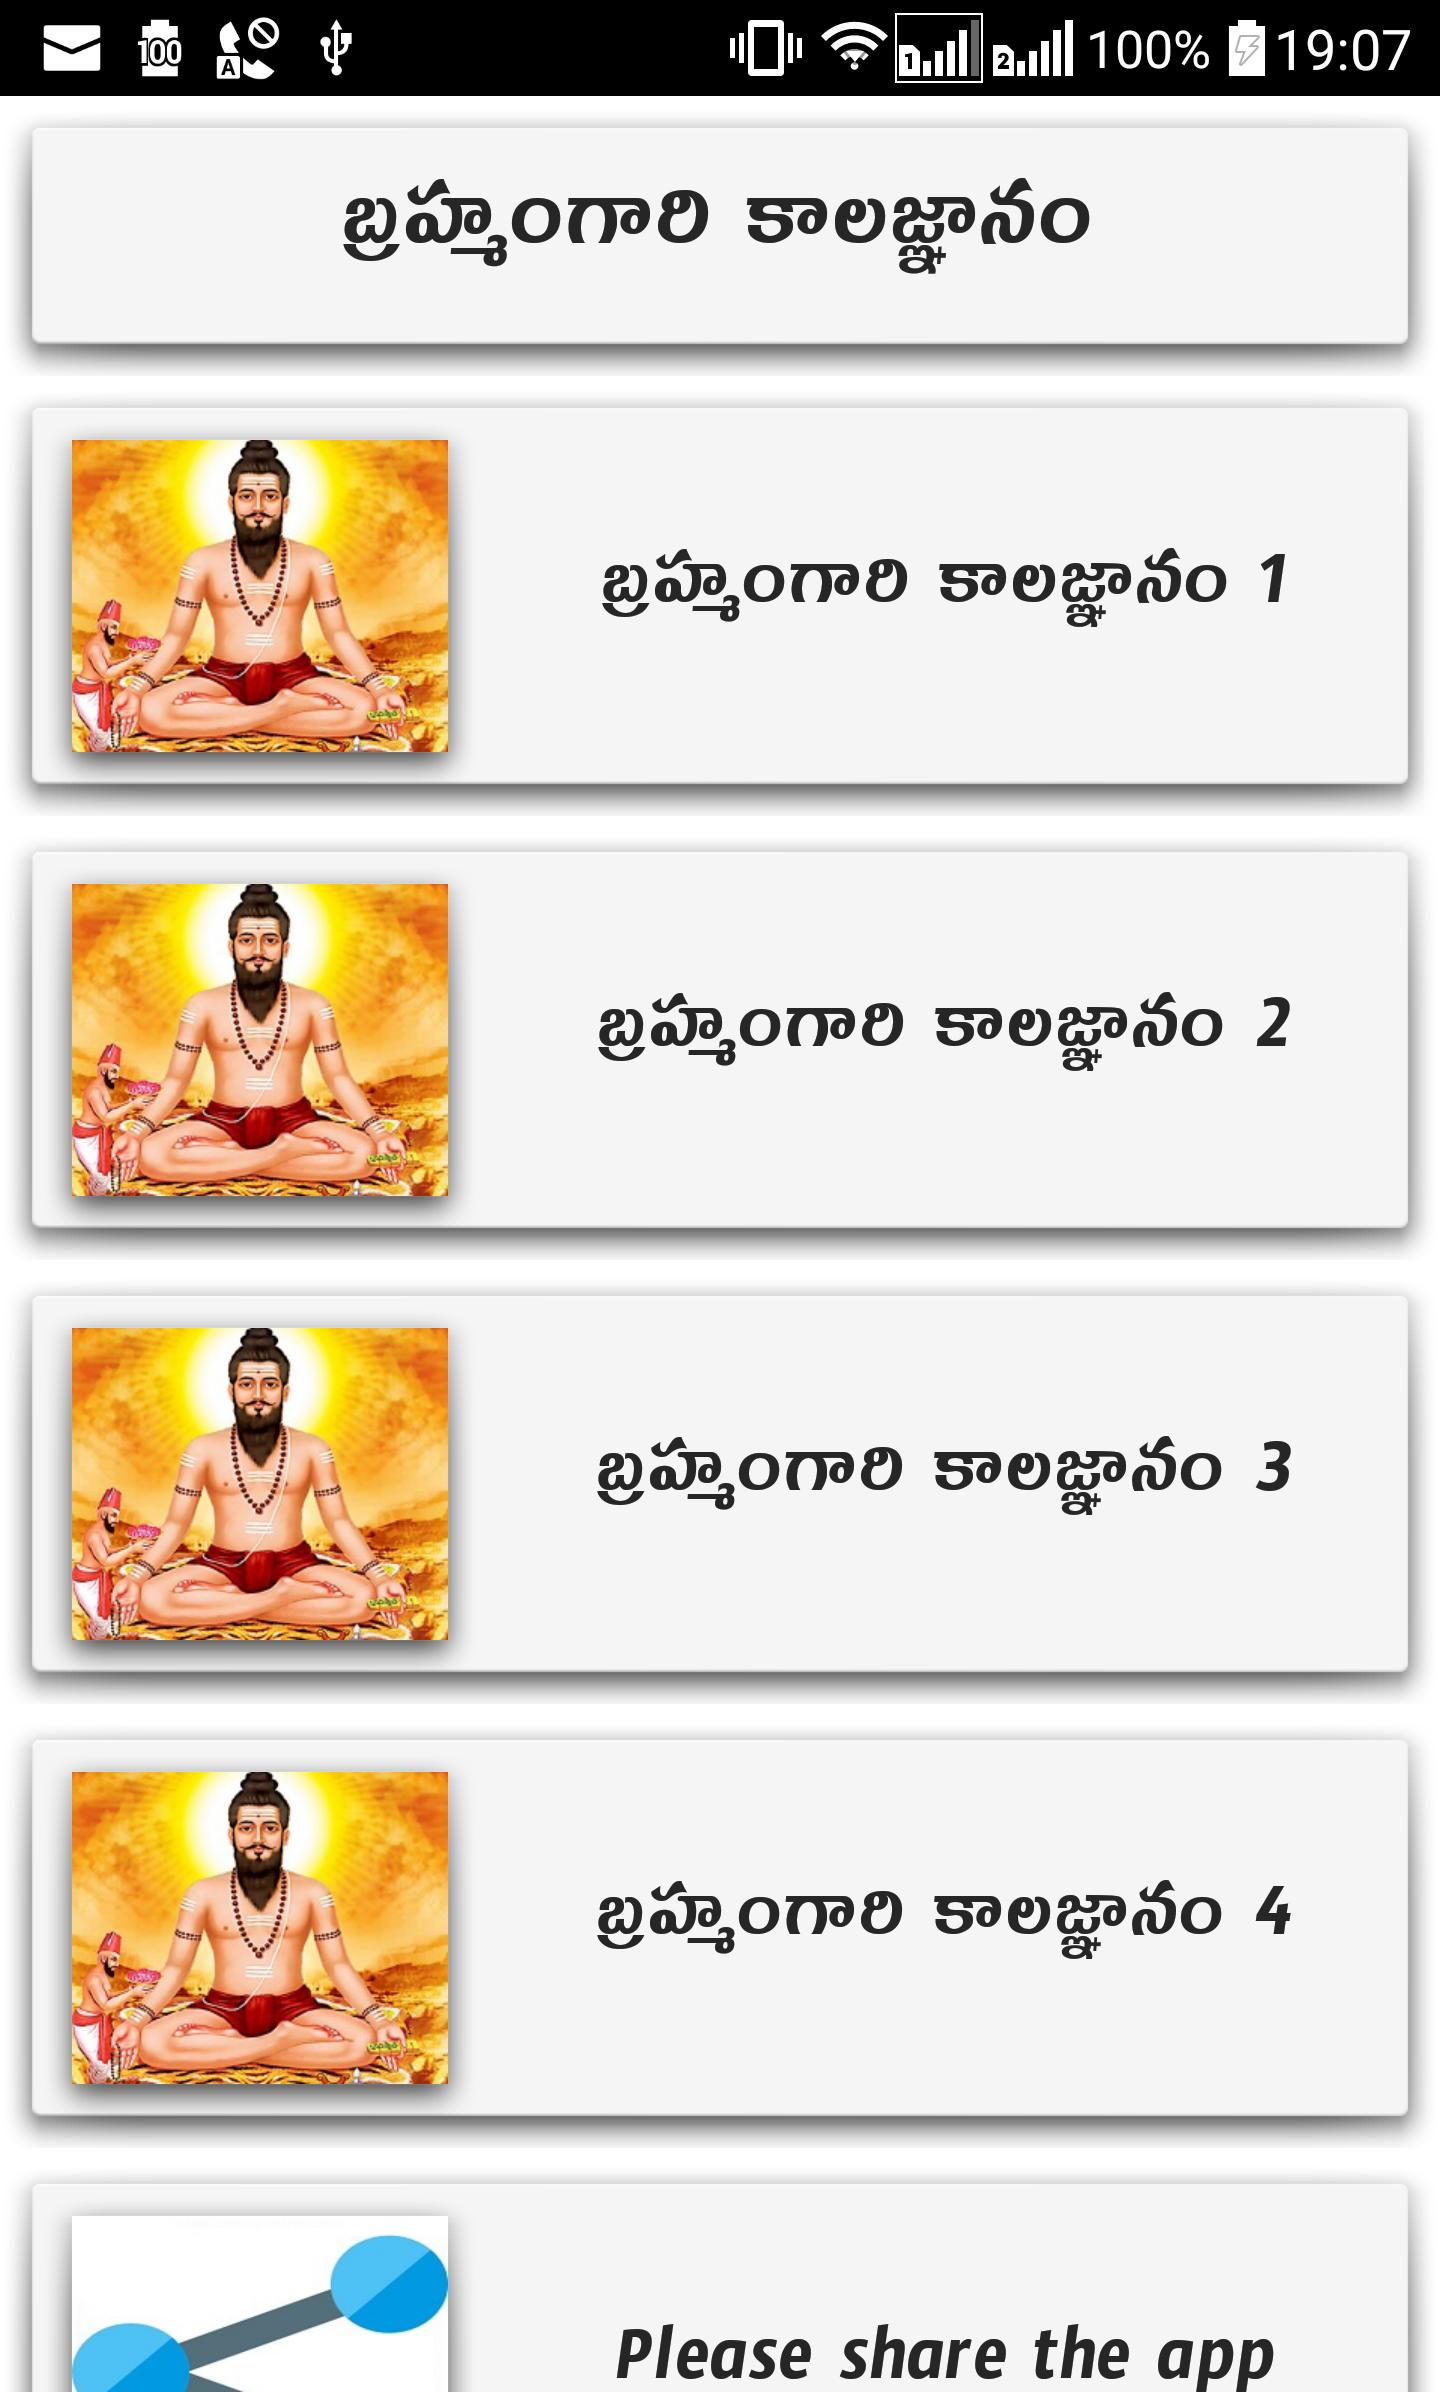 Veera Brahmam Gari Kalagnanam for Android - APK Download